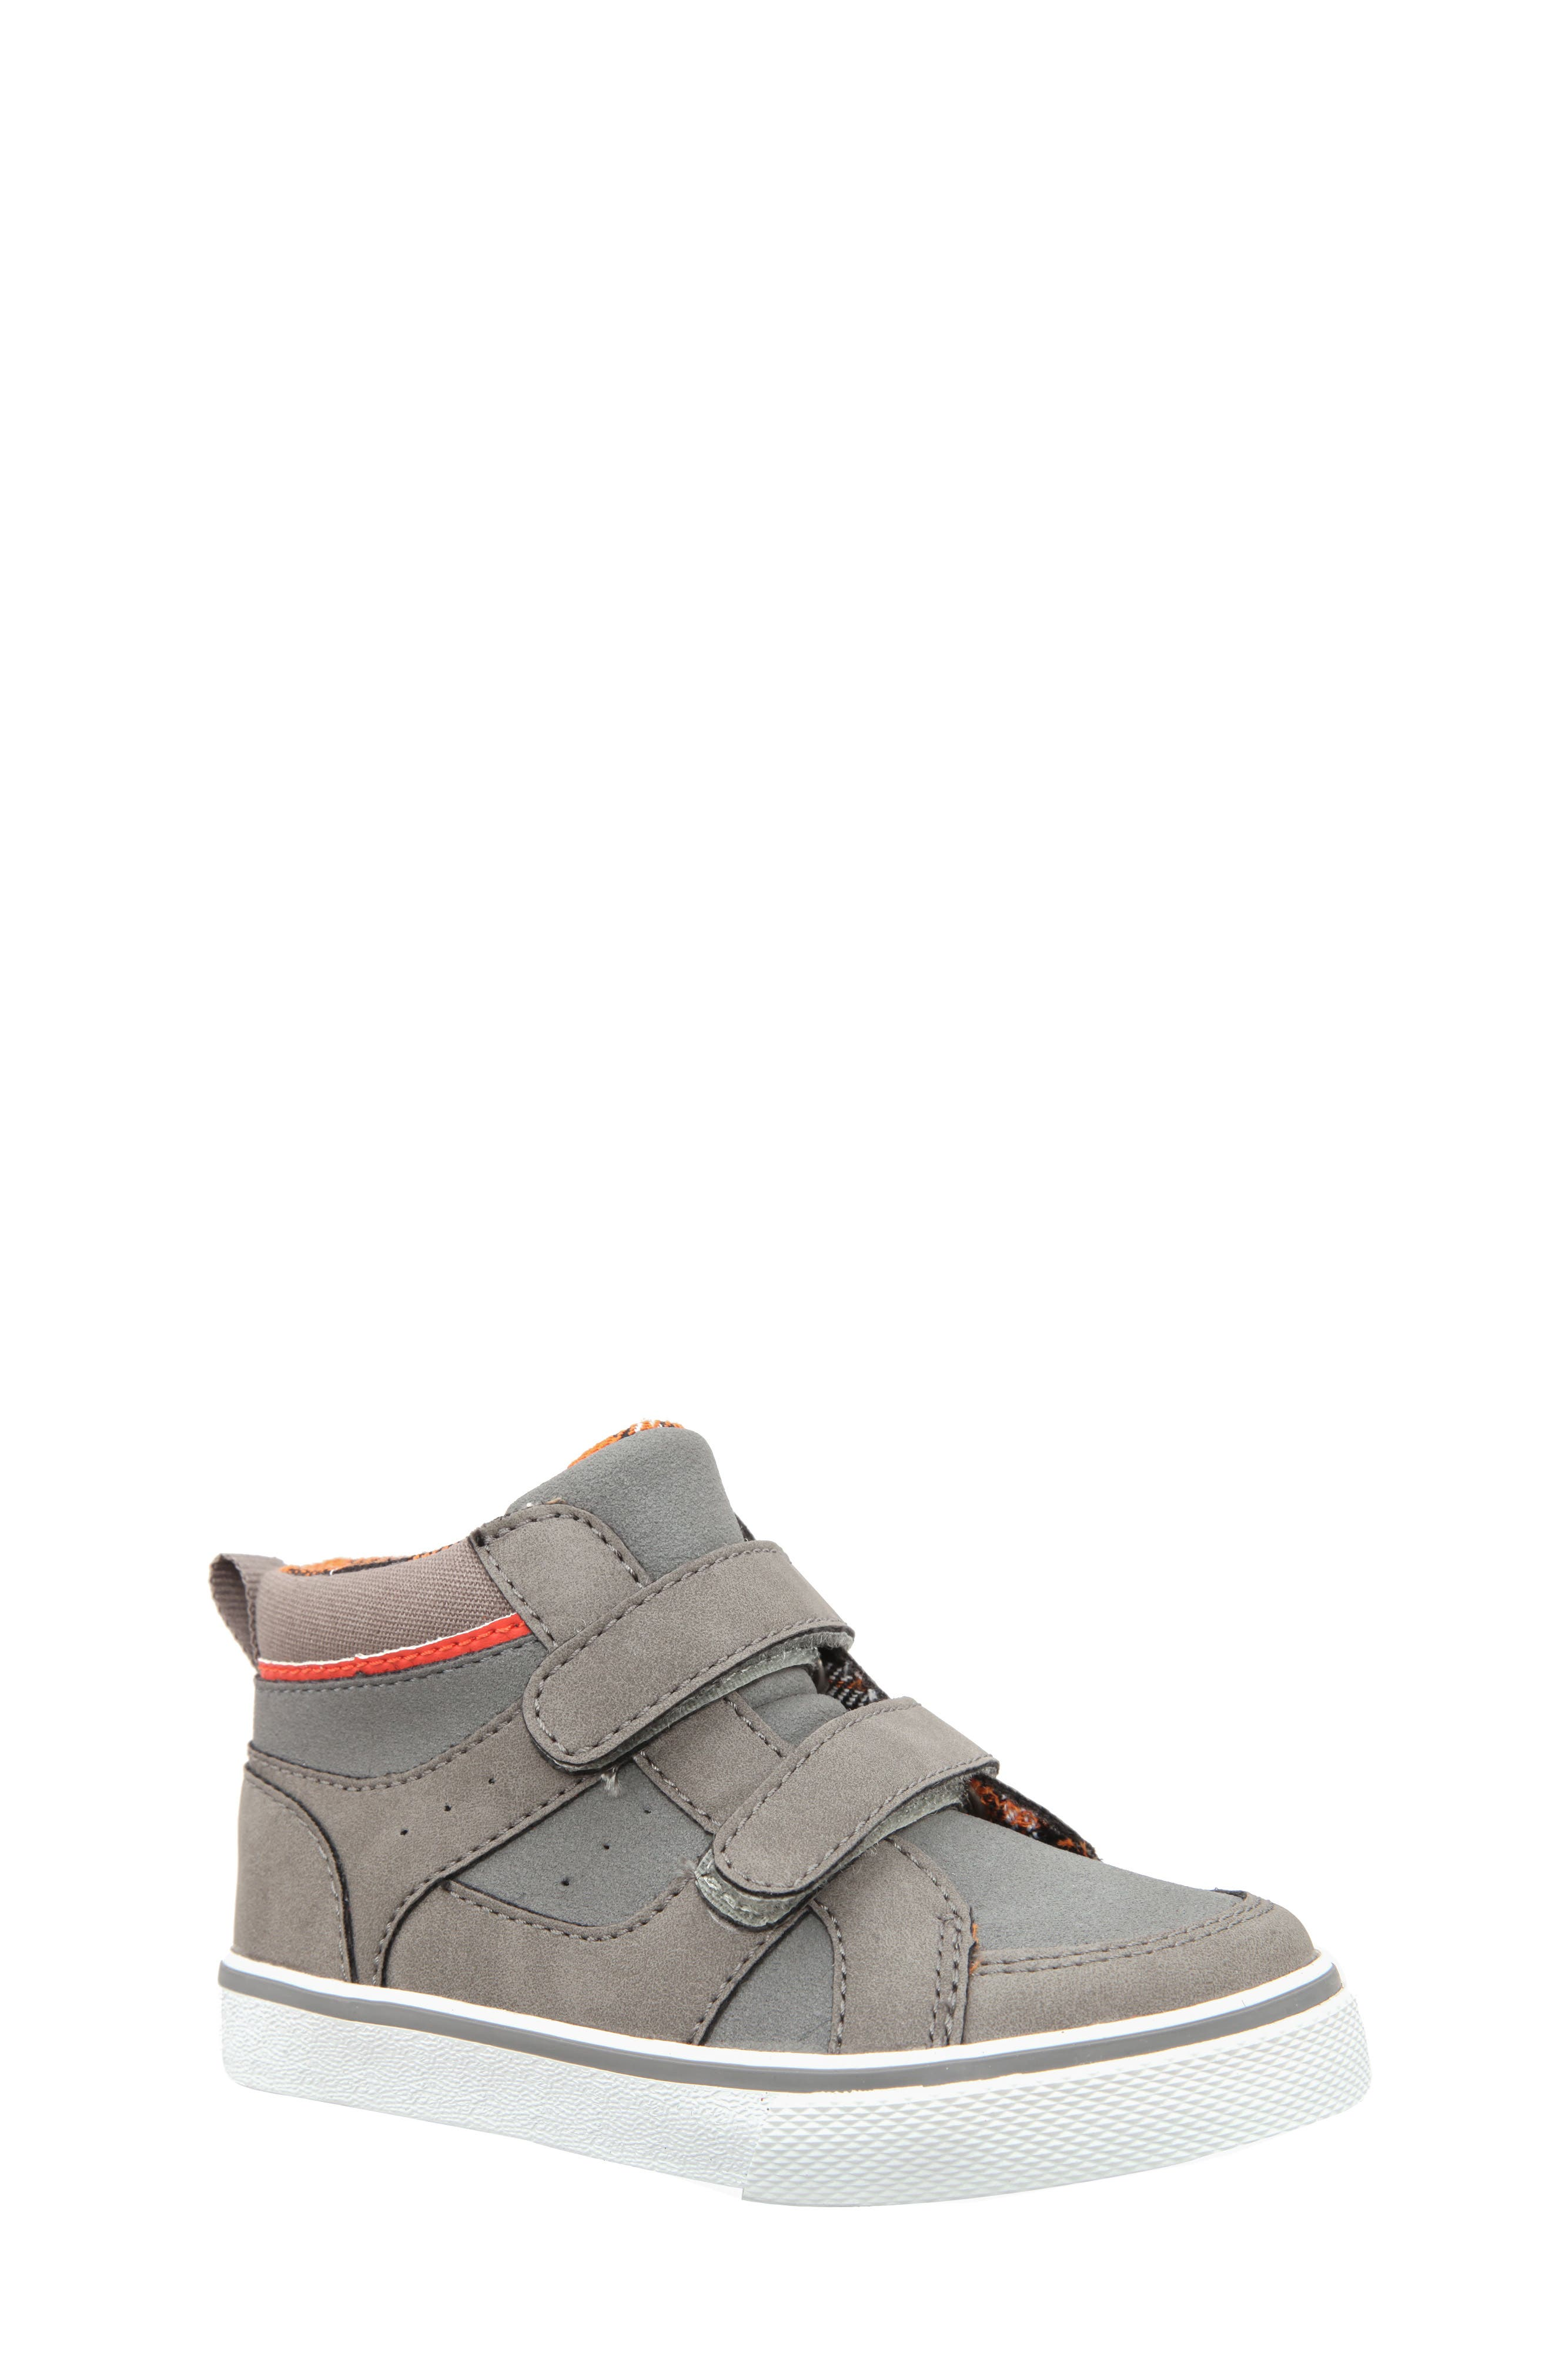 elements by Nina Roy Mid Top Sneaker (Walker & Toddler)